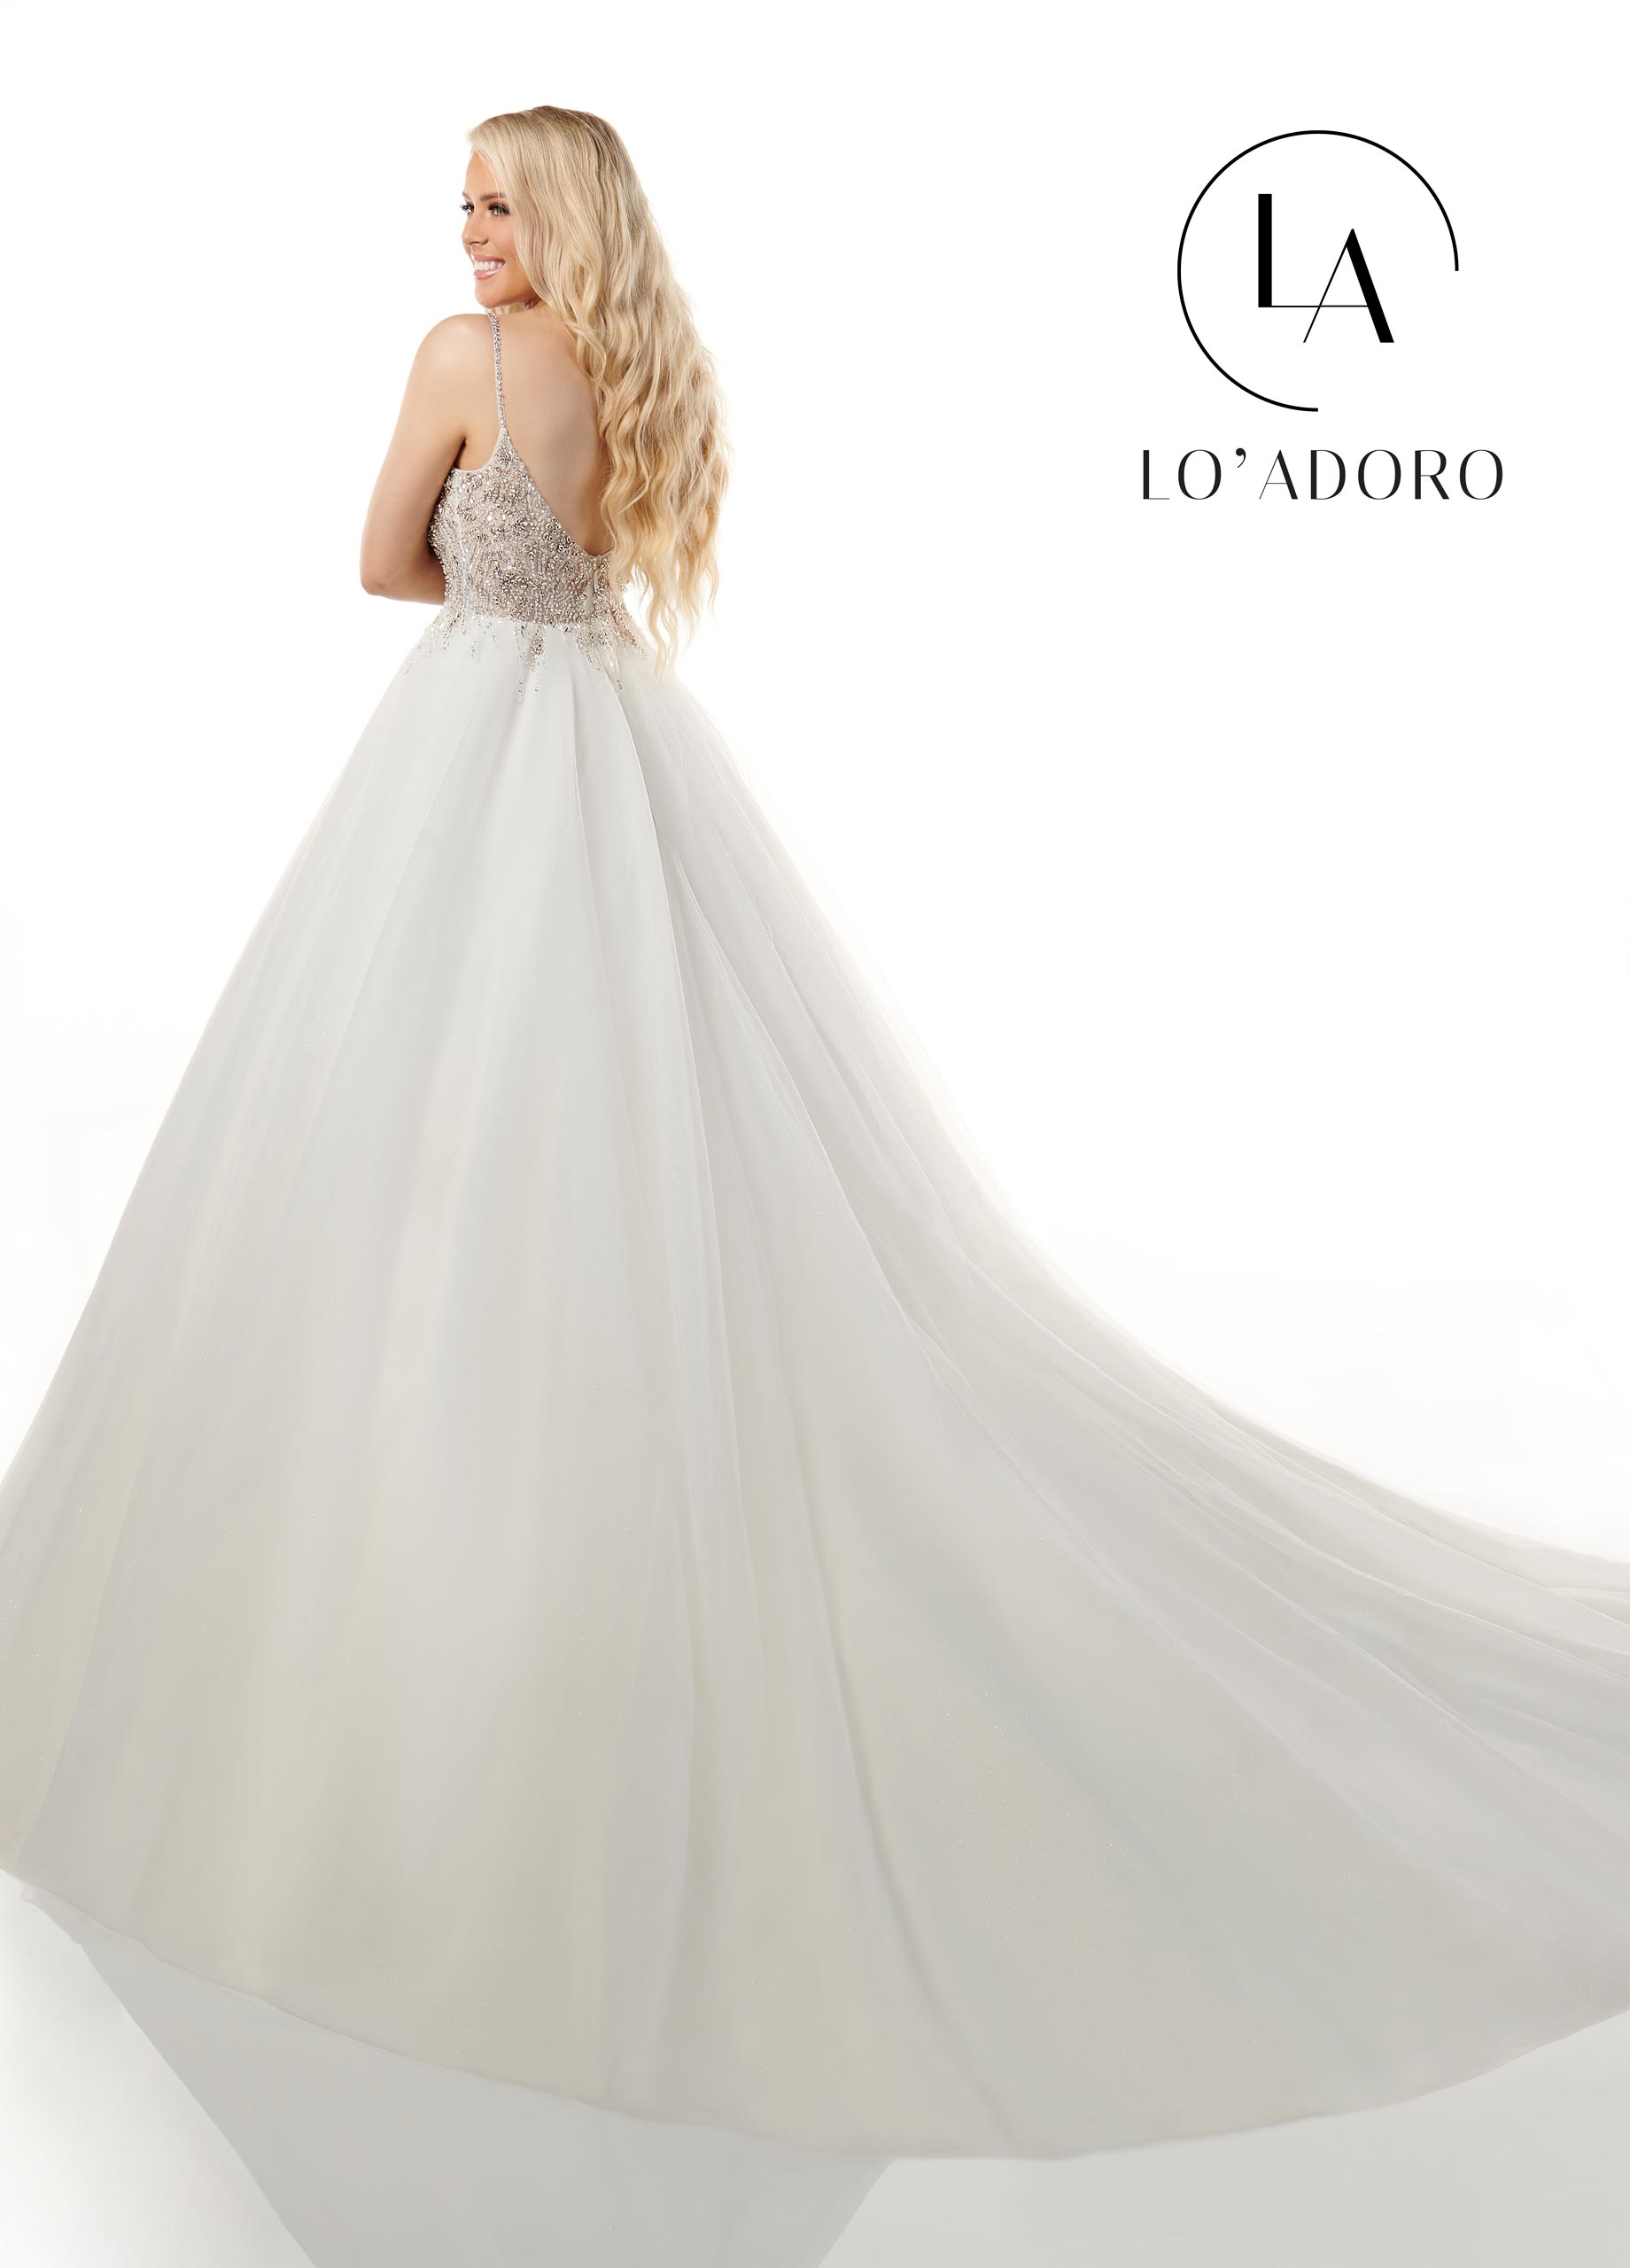 Strappy Ball Gowns Lo' Adoro Bridal in White Color